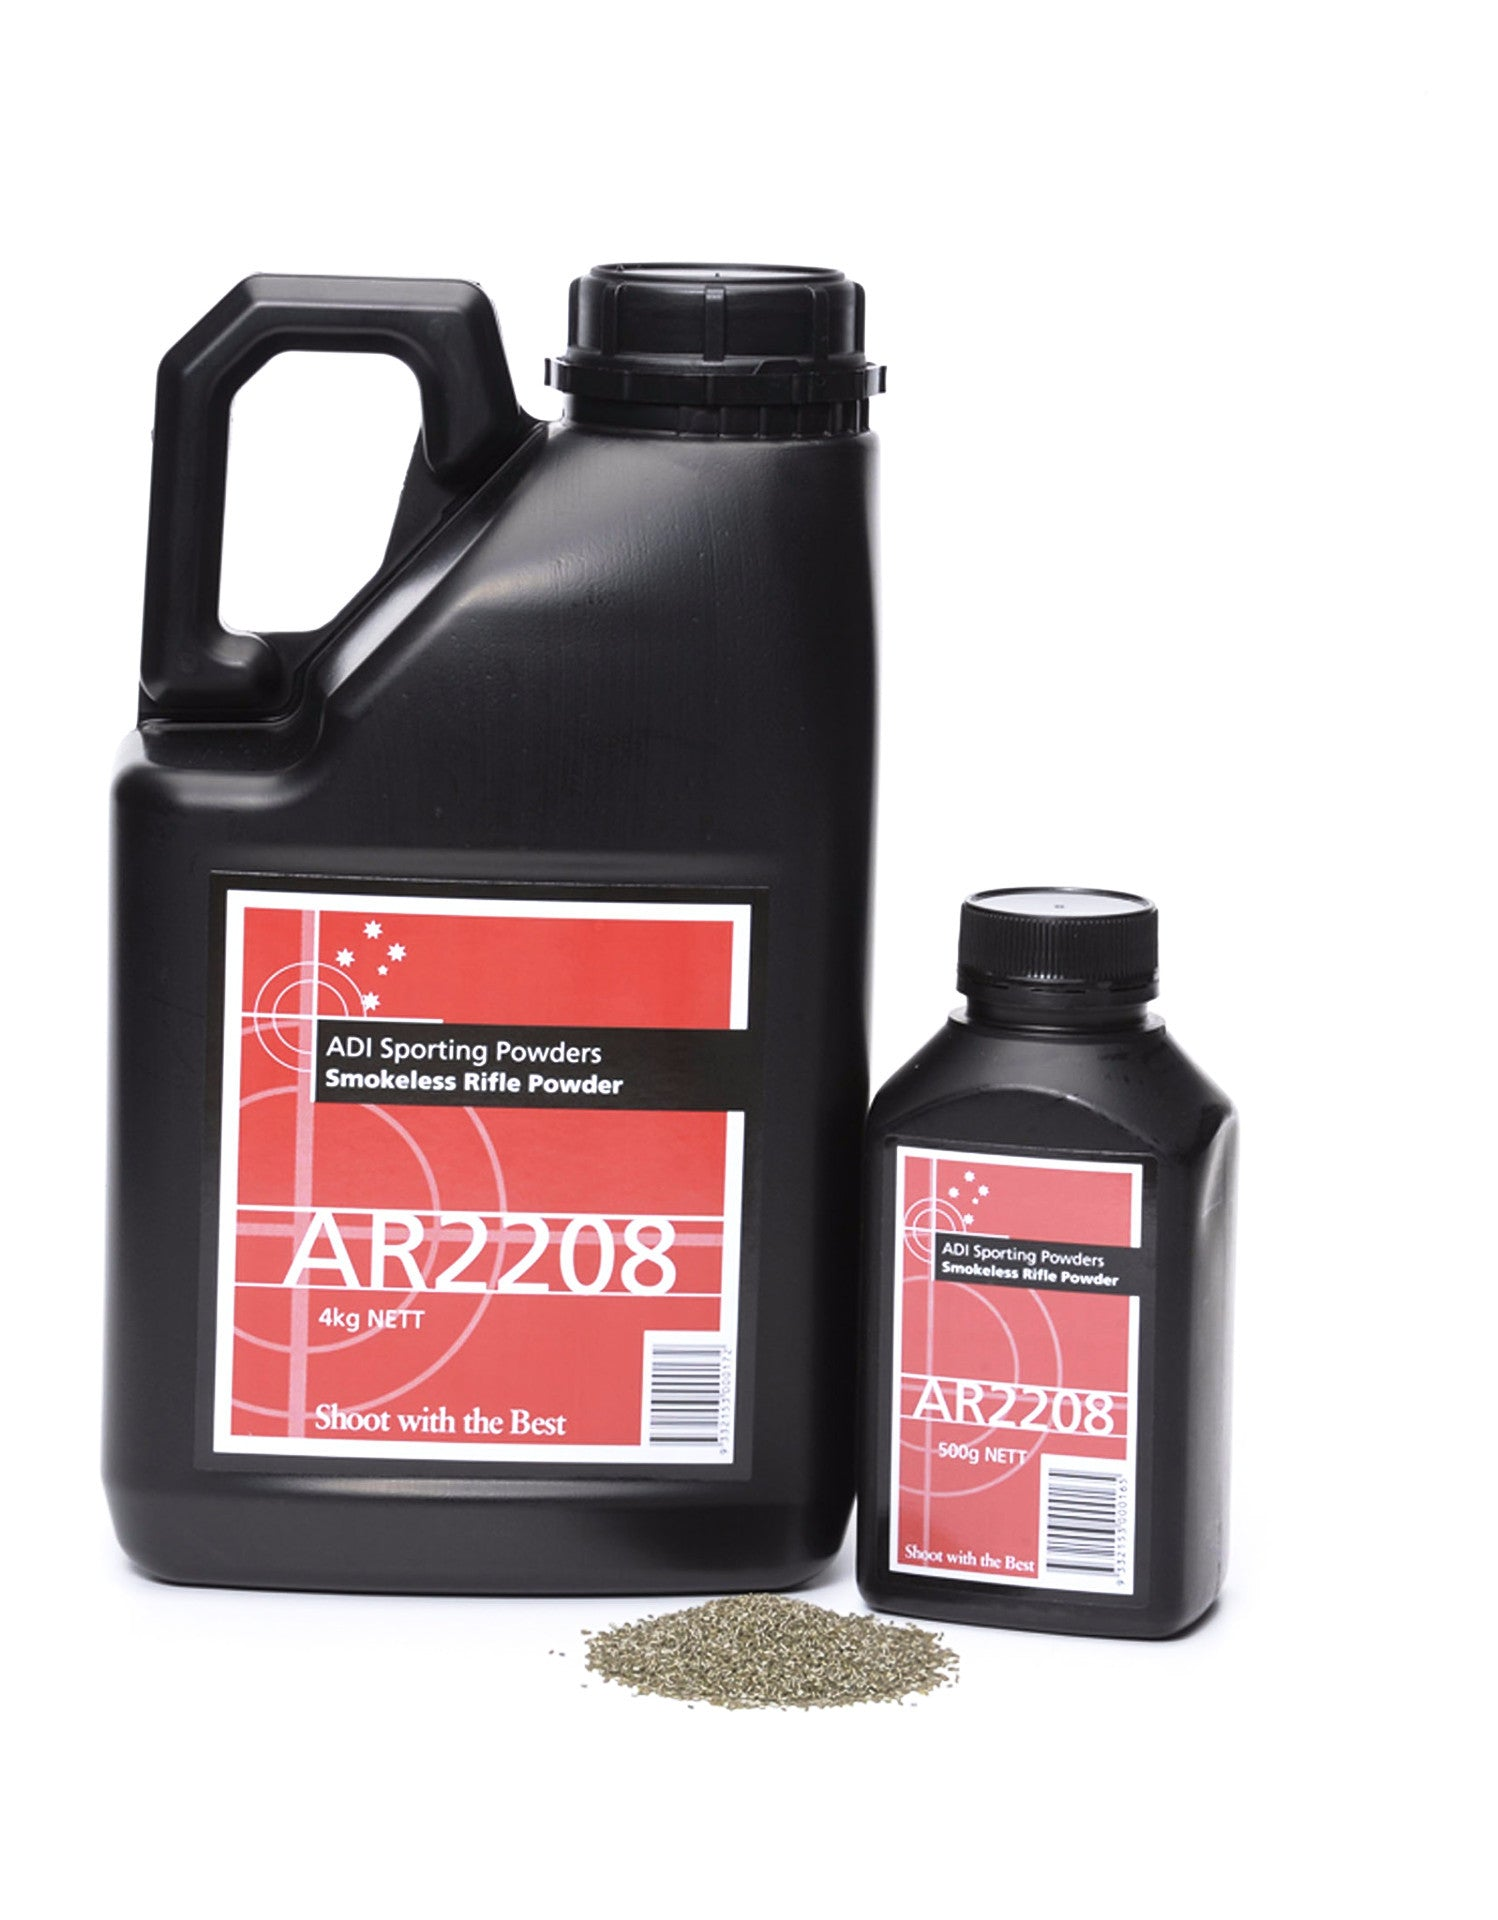 ADI Sporting Powders AR2208 (500g)